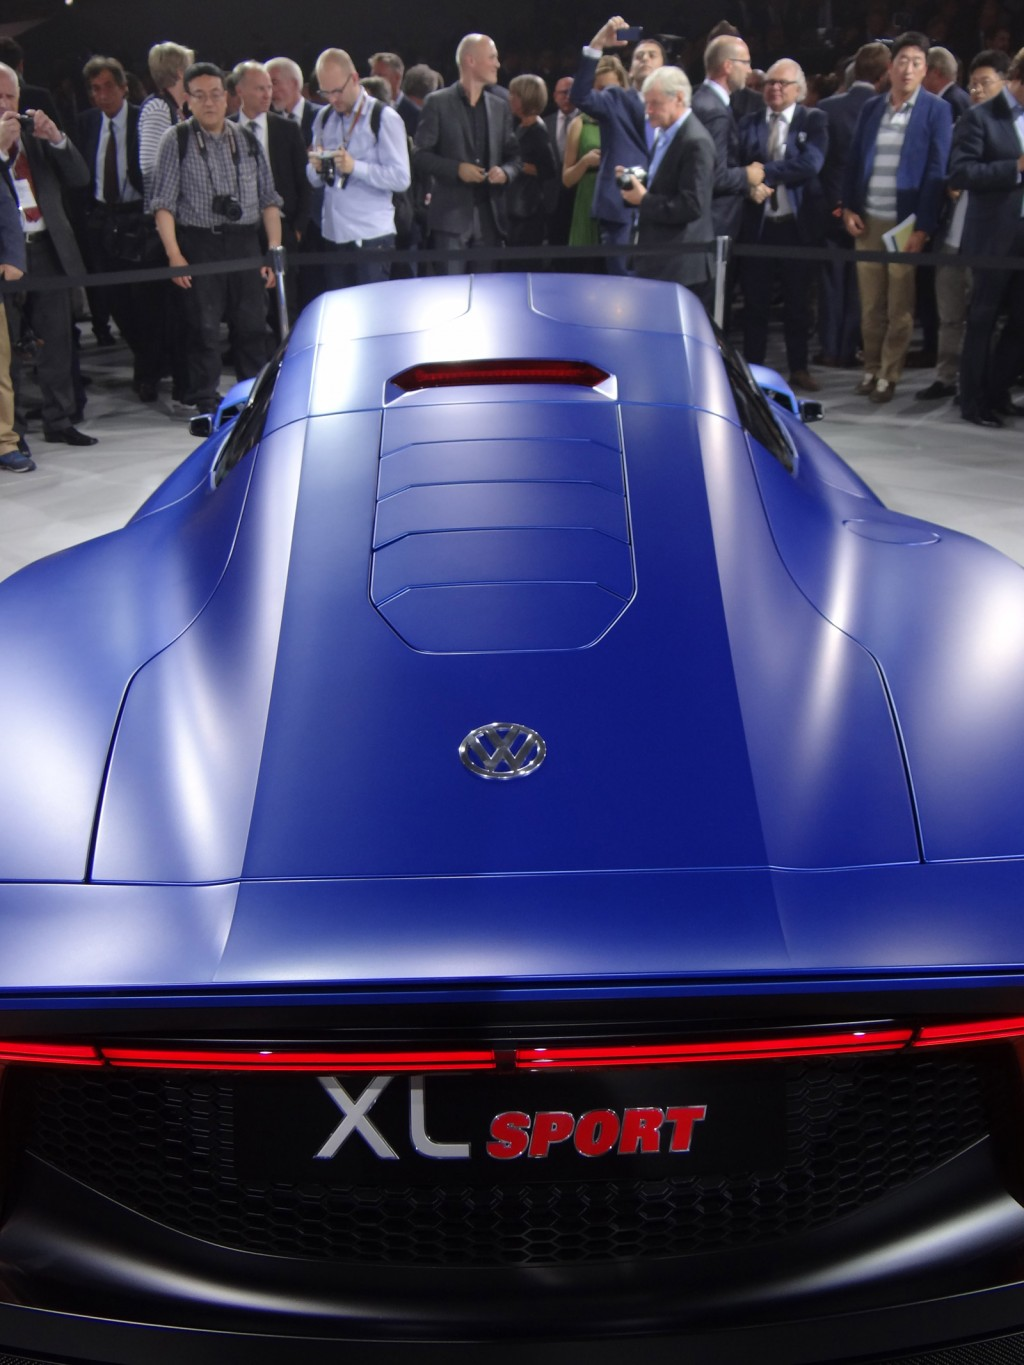 volkswagen xl sport with ducati v twin engine paris motor show photos. Black Bedroom Furniture Sets. Home Design Ideas